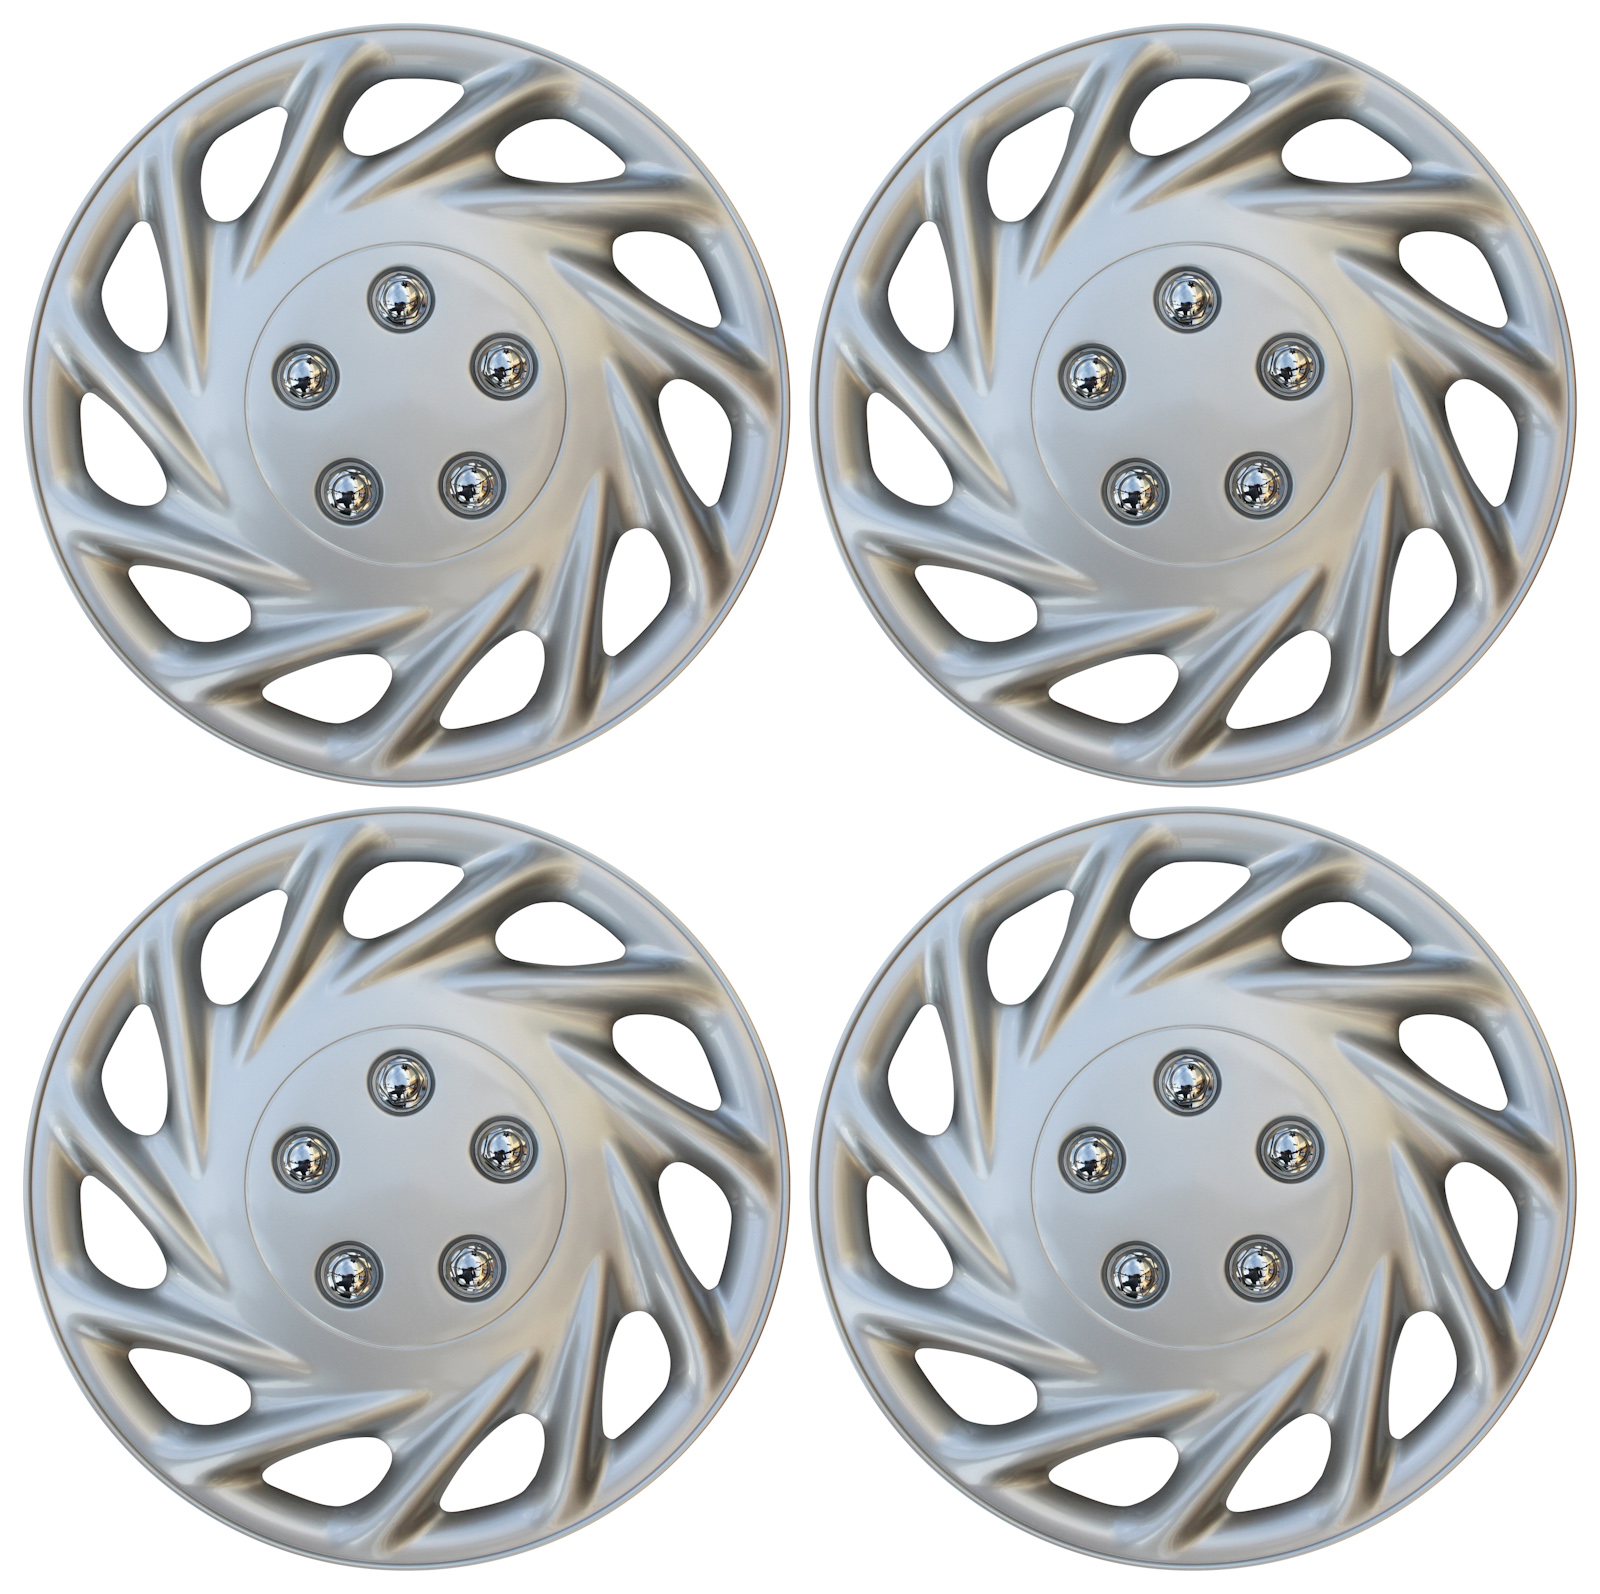 "Hub Cap ABS Silver 15"" Inch Rim Wheel Skin Cover Center 4 pc Set Caps Covers"